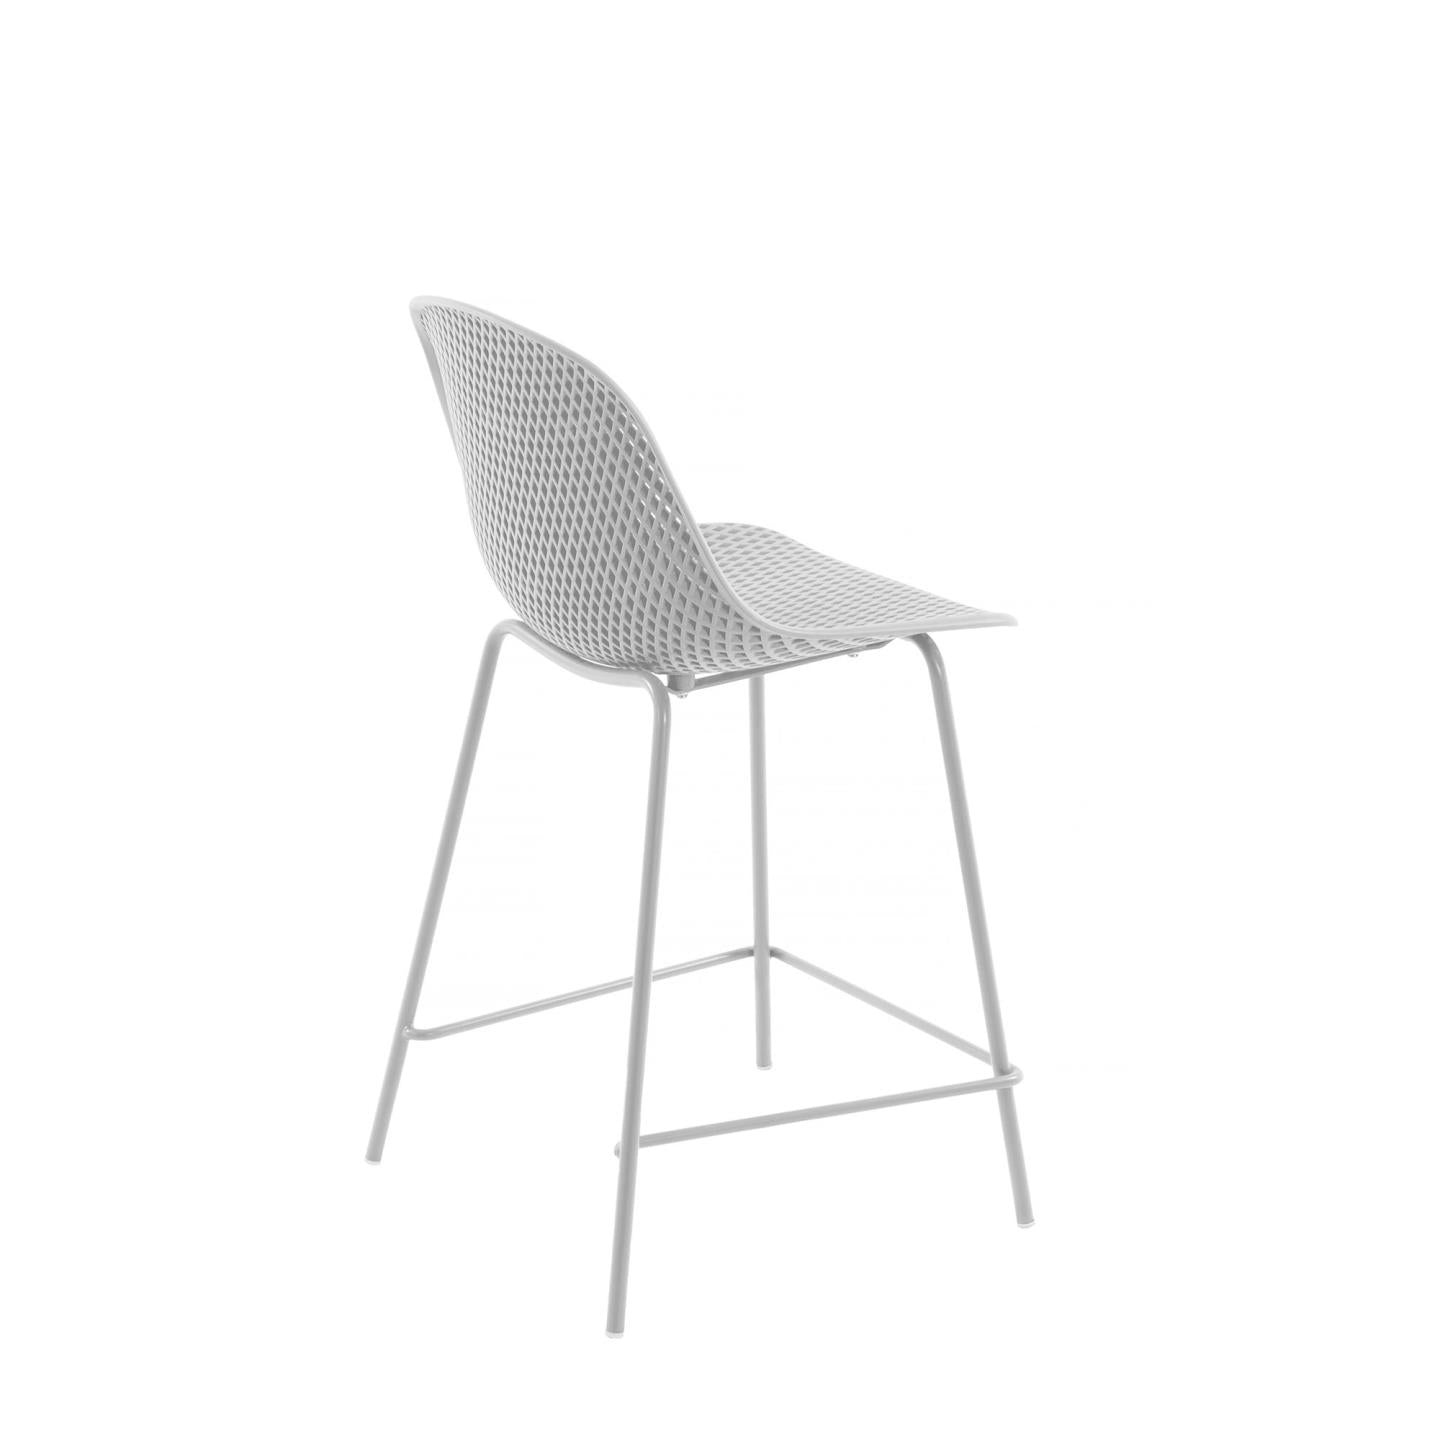 Luino Outdoor Stool White Height 65 cm, Barstool - Home-Buy Interiors